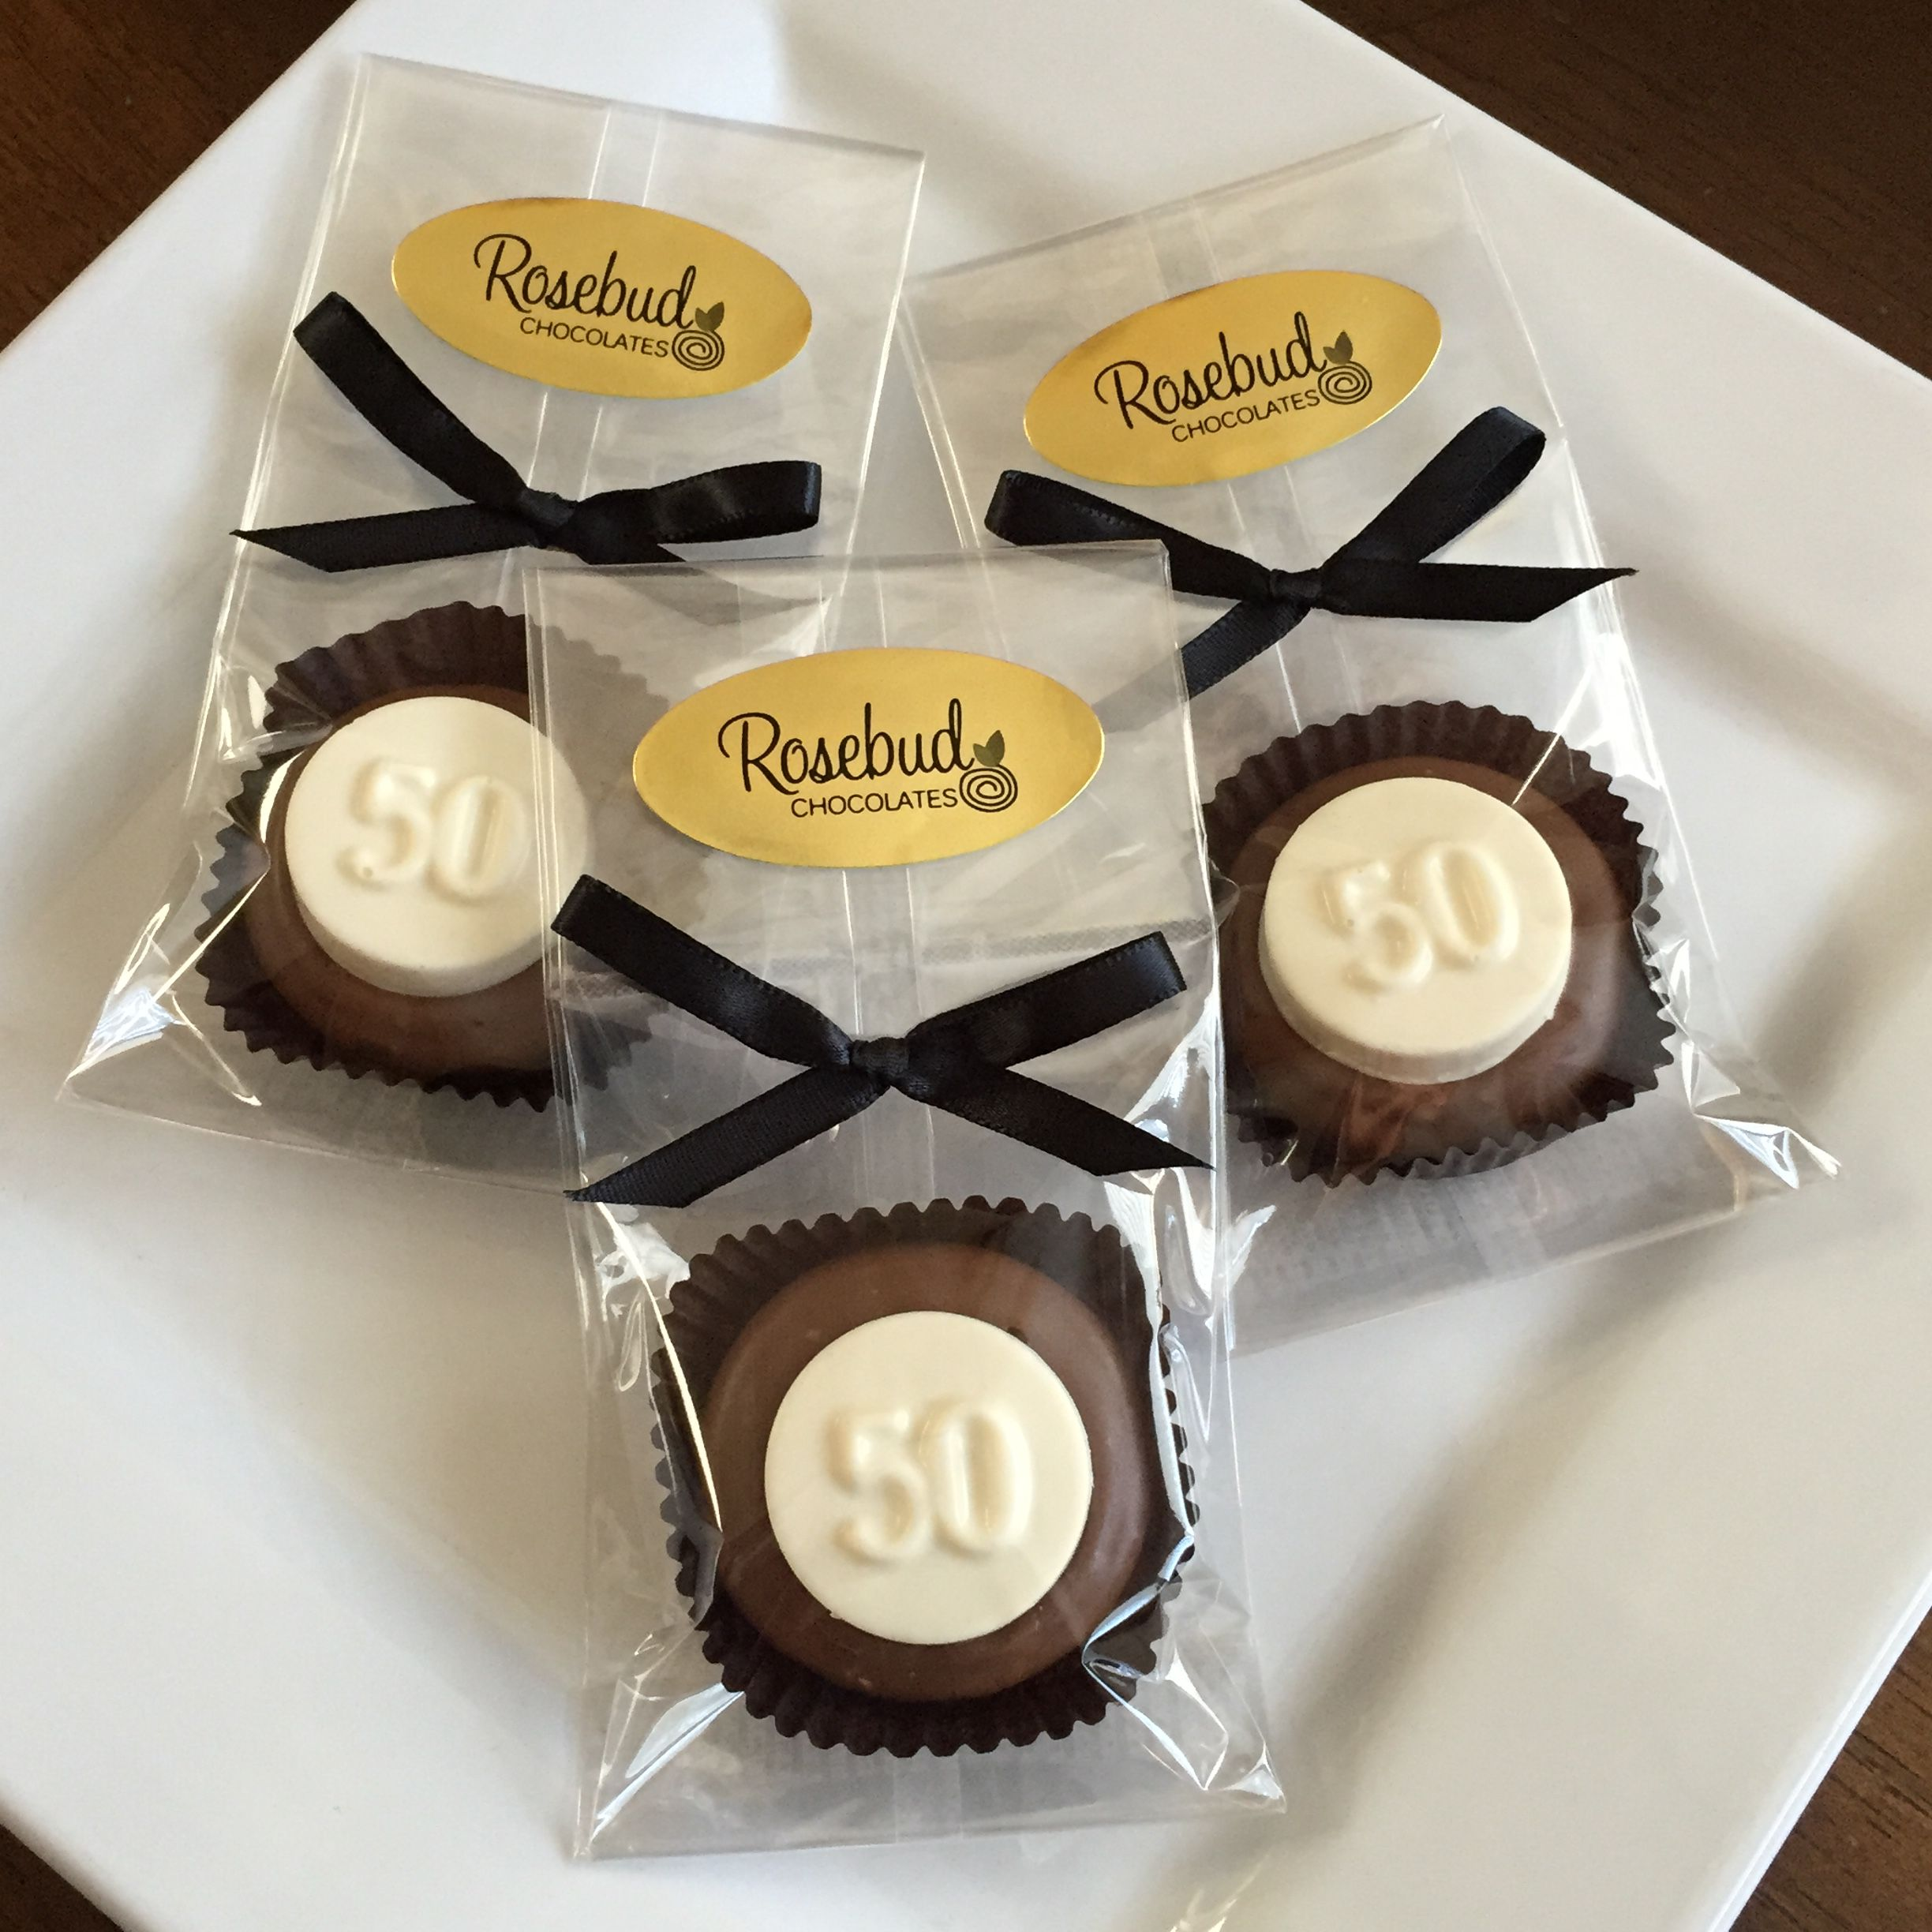 12 Chocolate NUMBER FIFTY #50 Oreo Cookie Favors In 2019